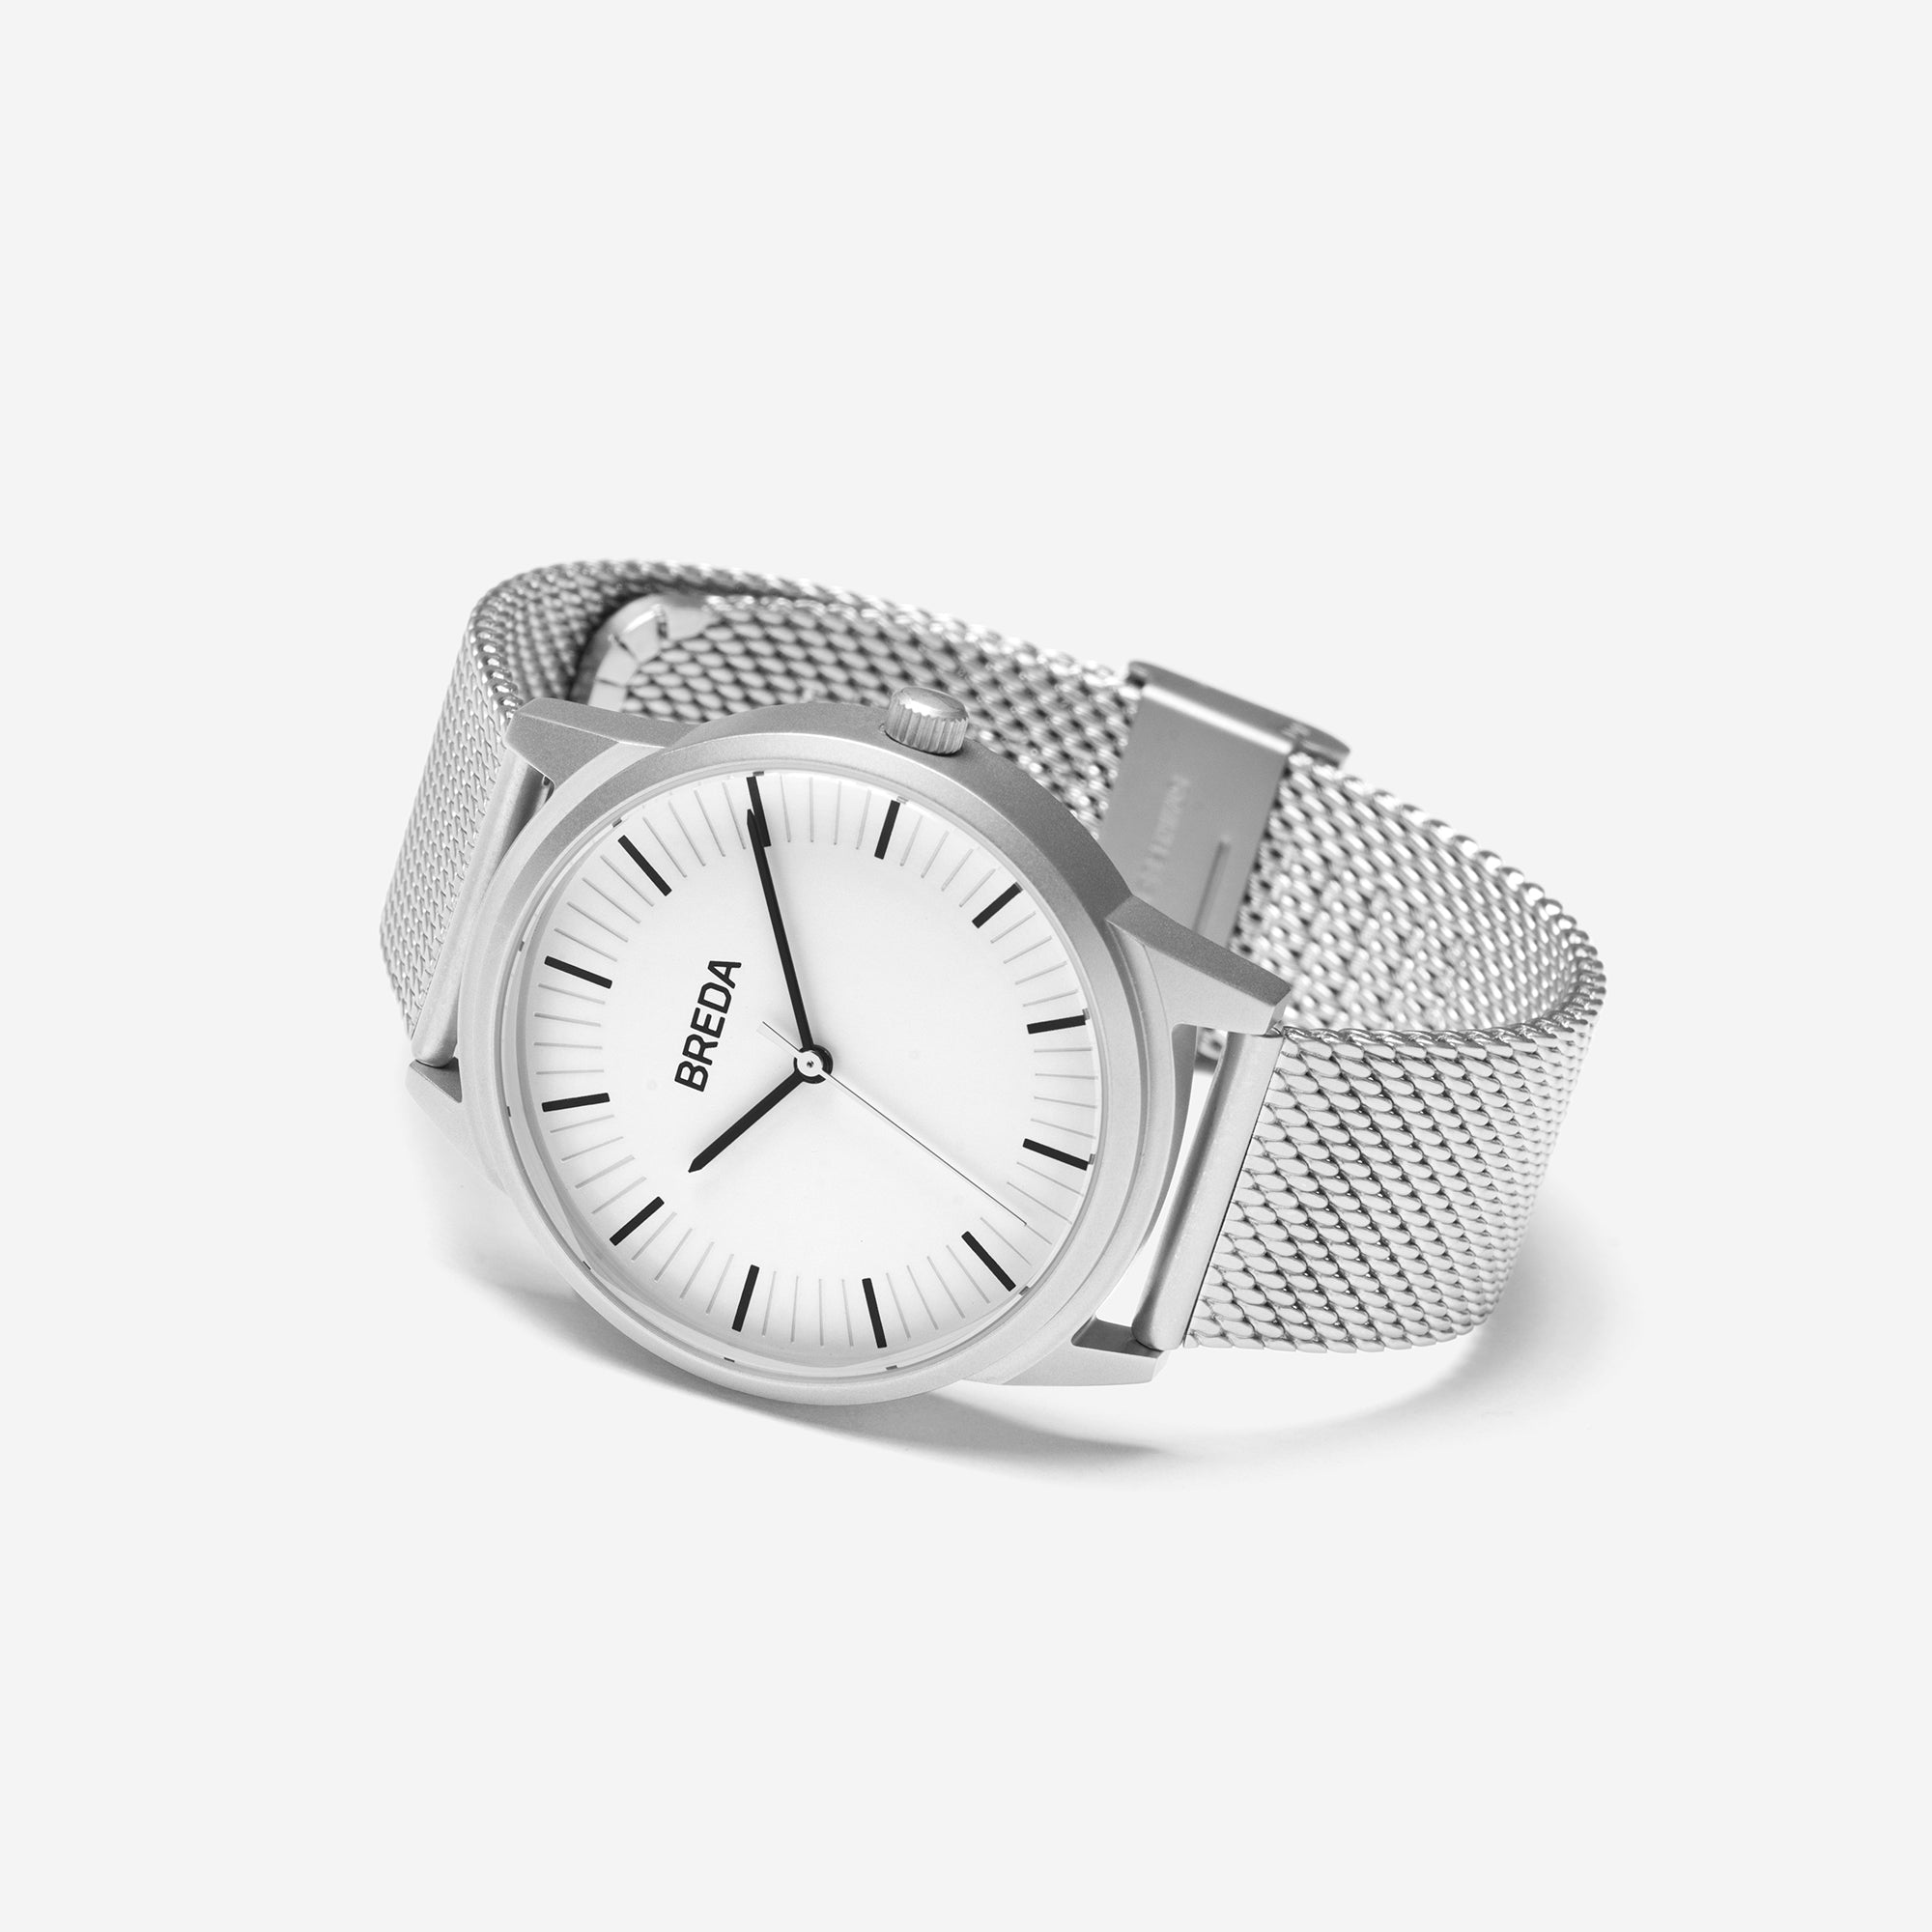 //cdn.shopify.com/s/files/1/0879/6650/products/breda-bresson-5020j-silver-mesh-watch-angle_64f6ca1b-bfdc-40c6-9736-d16636749d9d_1024x1024.jpg?v=1542823669